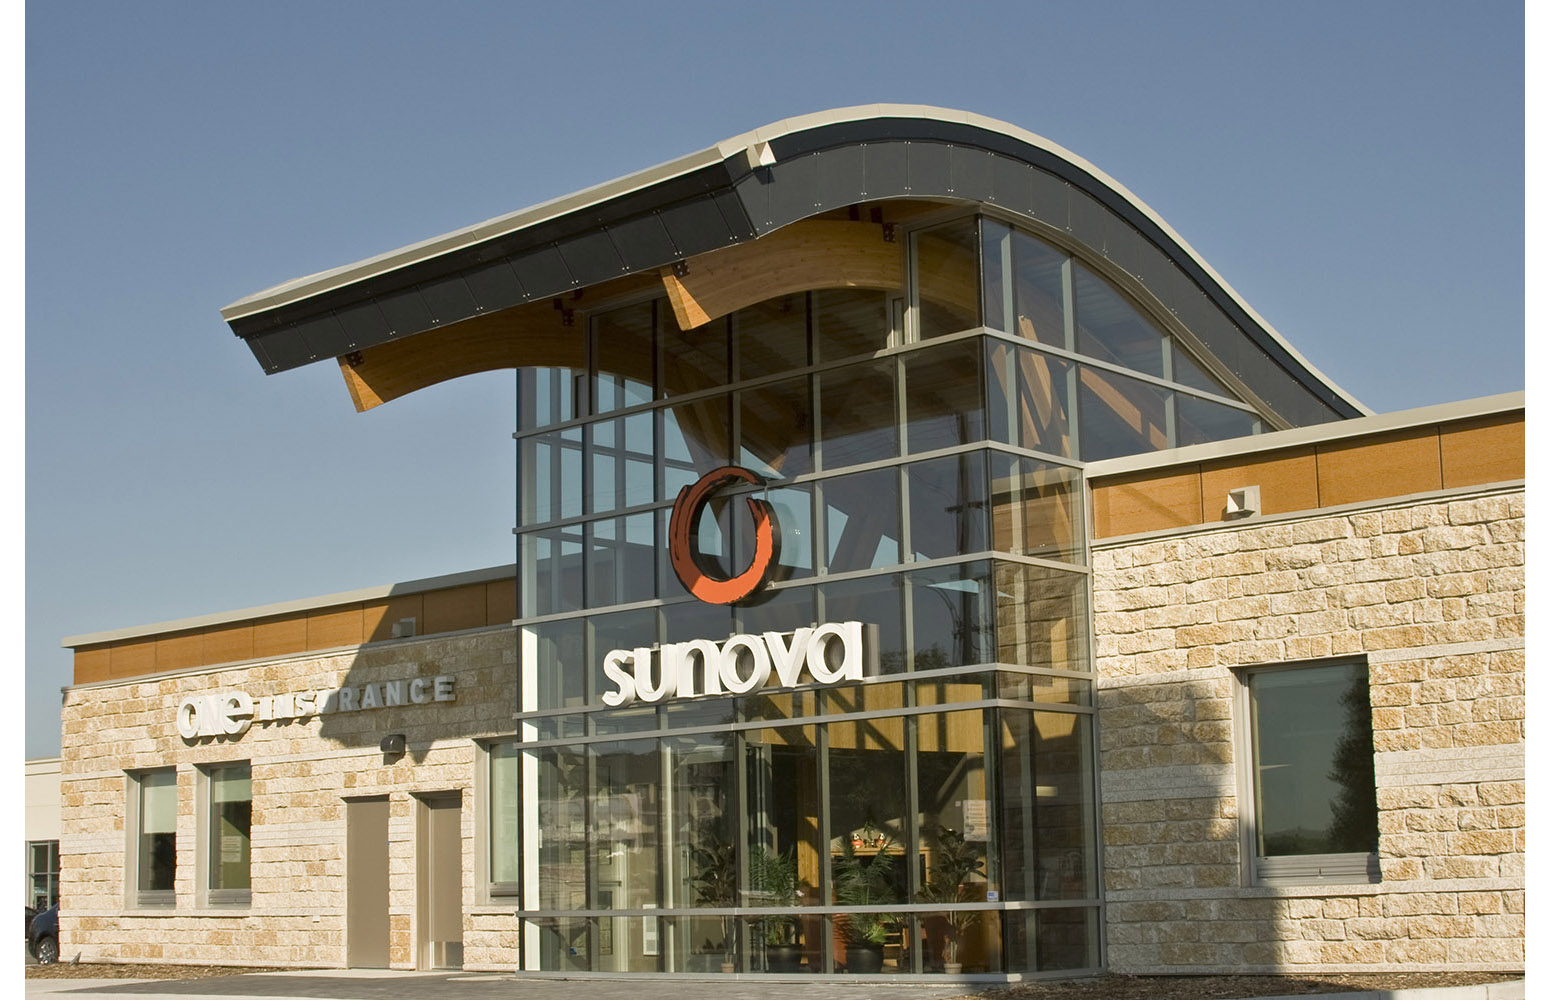 Sunova Credit Union, exterior photo of building entrance / Photo: Tracy A Wieler